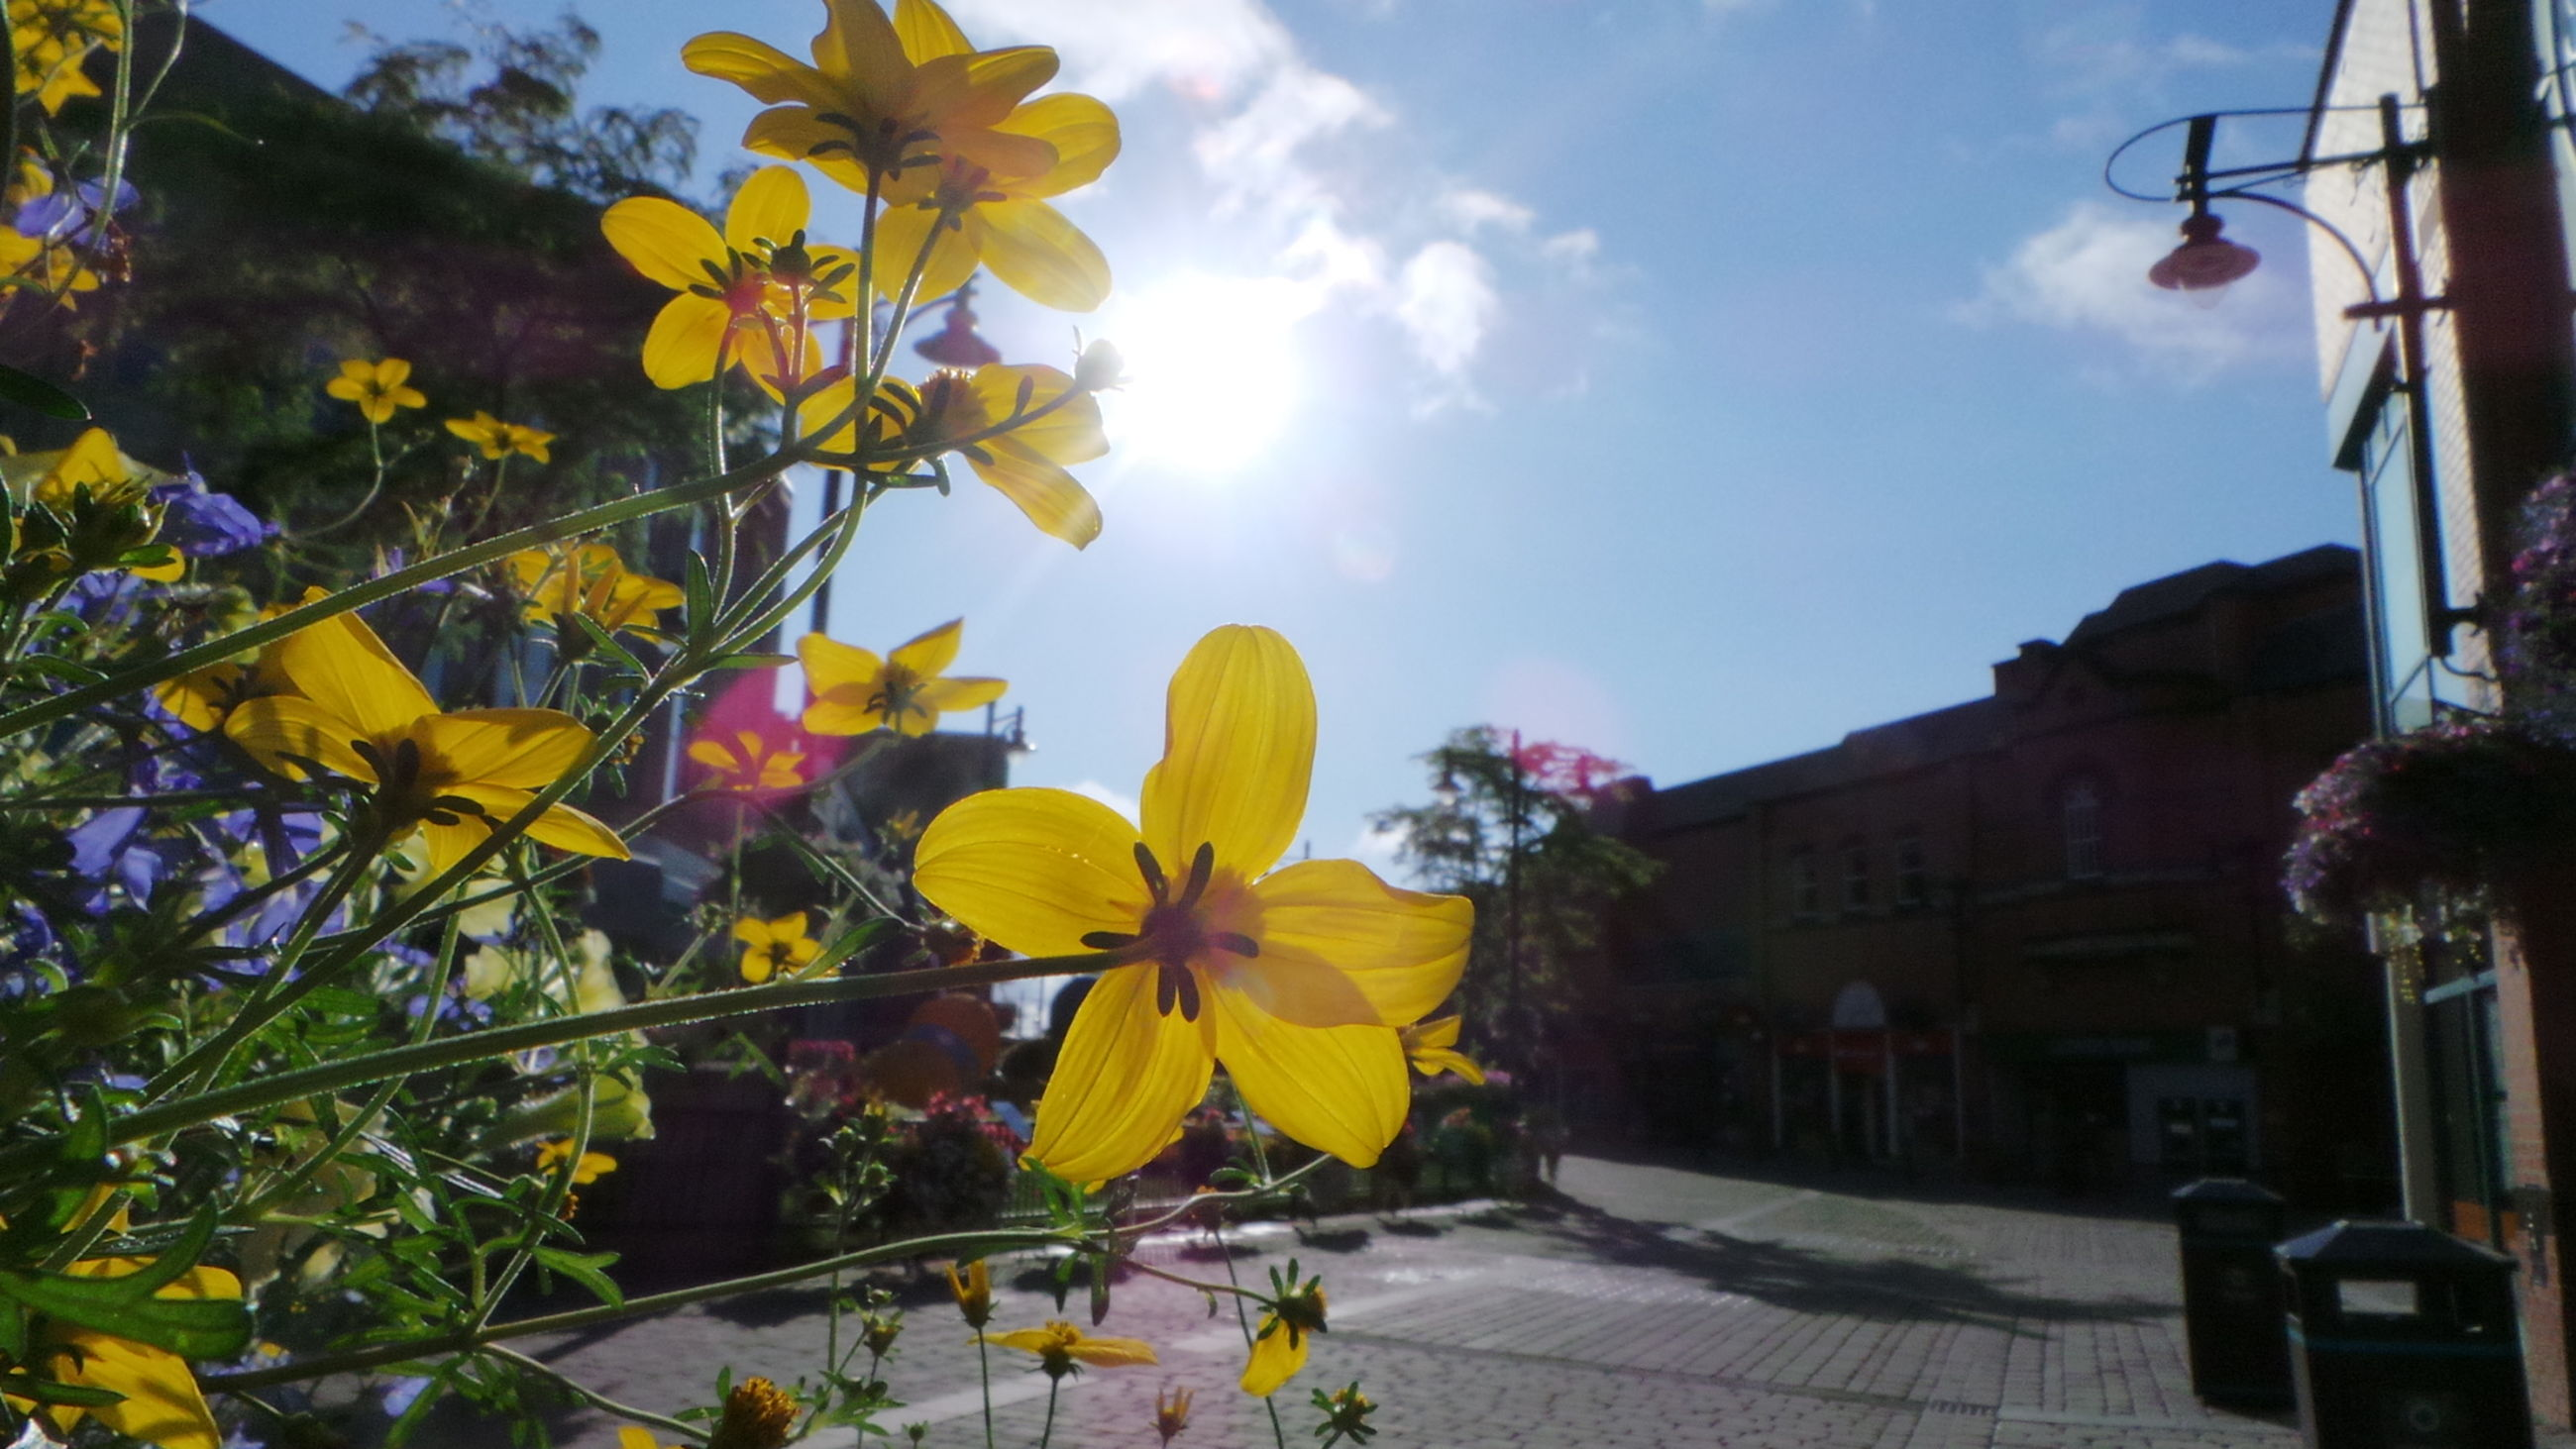 flower, freshness, building exterior, built structure, architecture, fragility, sky, growth, petal, yellow, low angle view, blooming, in bloom, beauty in nature, nature, plant, blossom, sunlight, tree, flower head